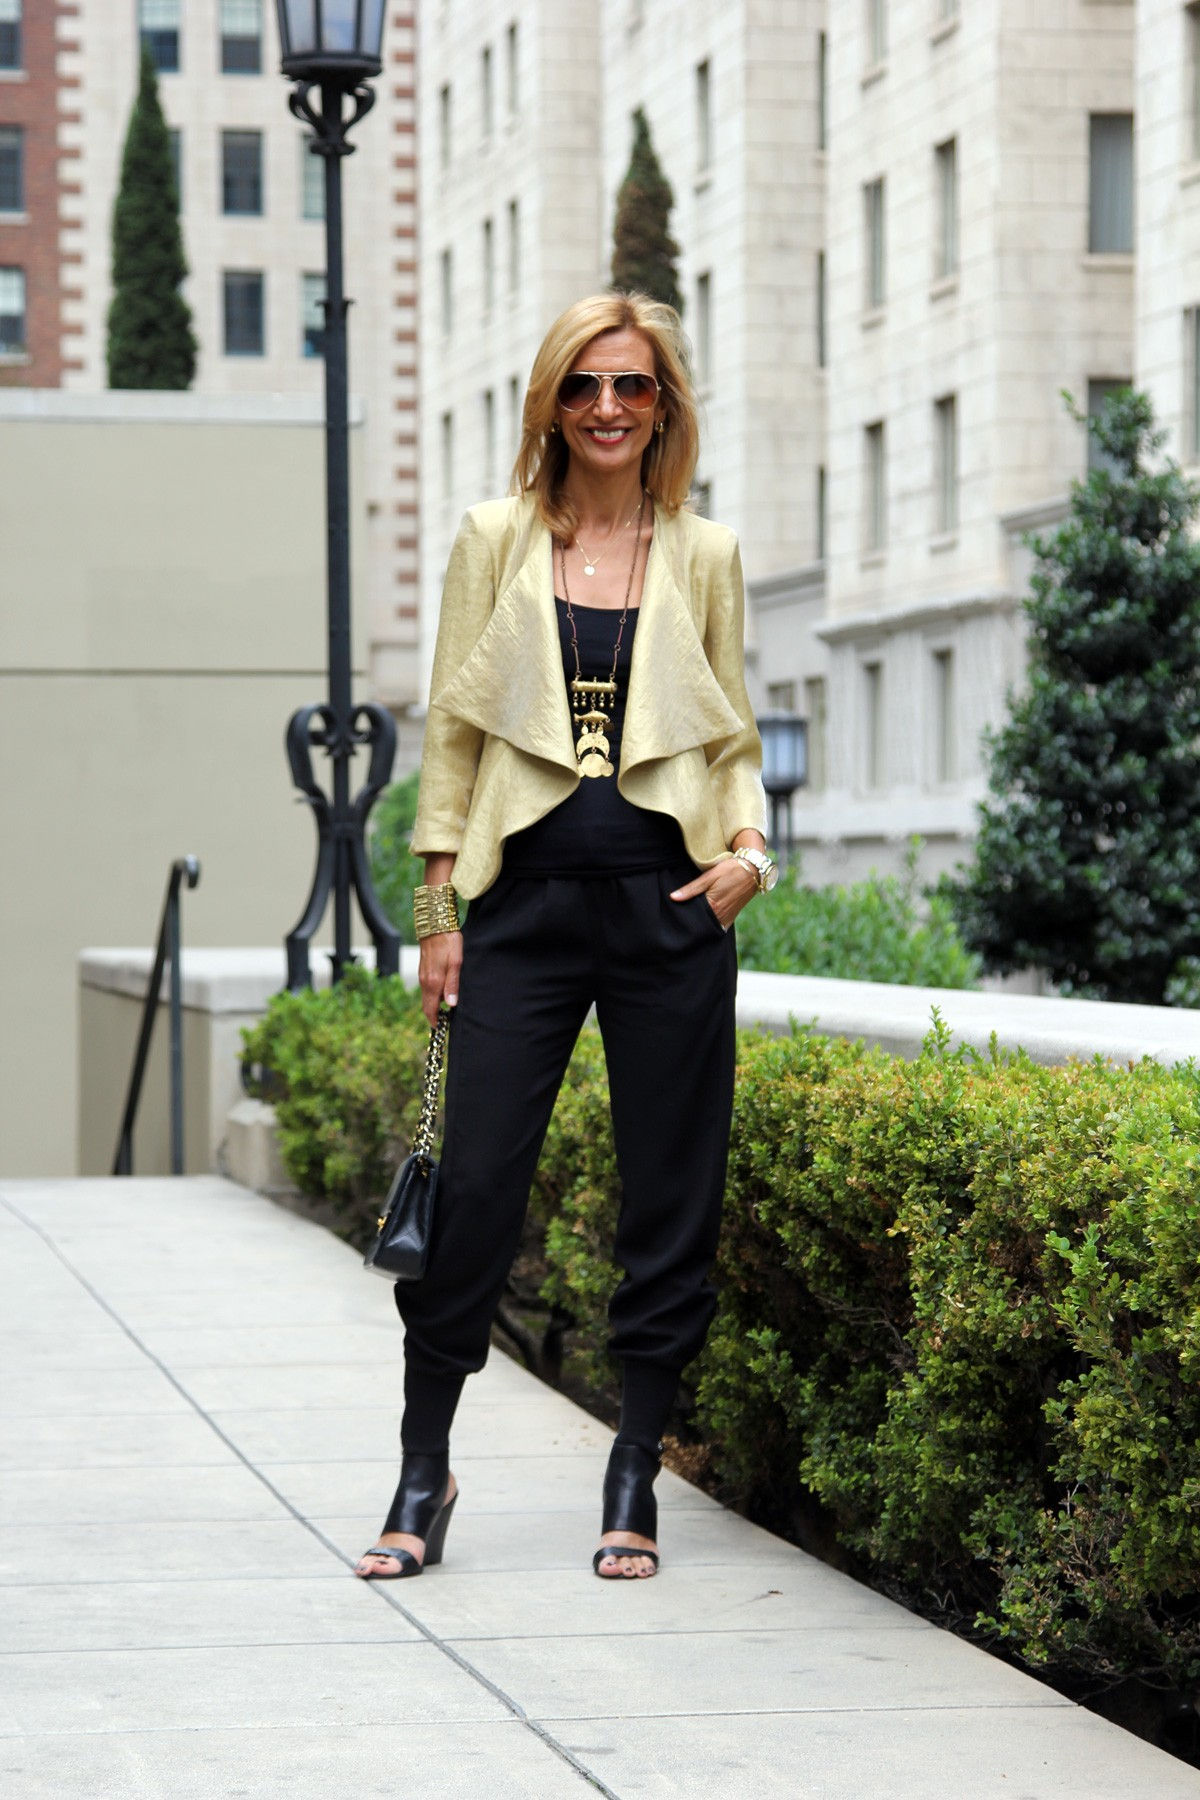 visiting-downtown-los-angeles-wearing-my-soleil-jacket-www.jacketsociety.com(6)